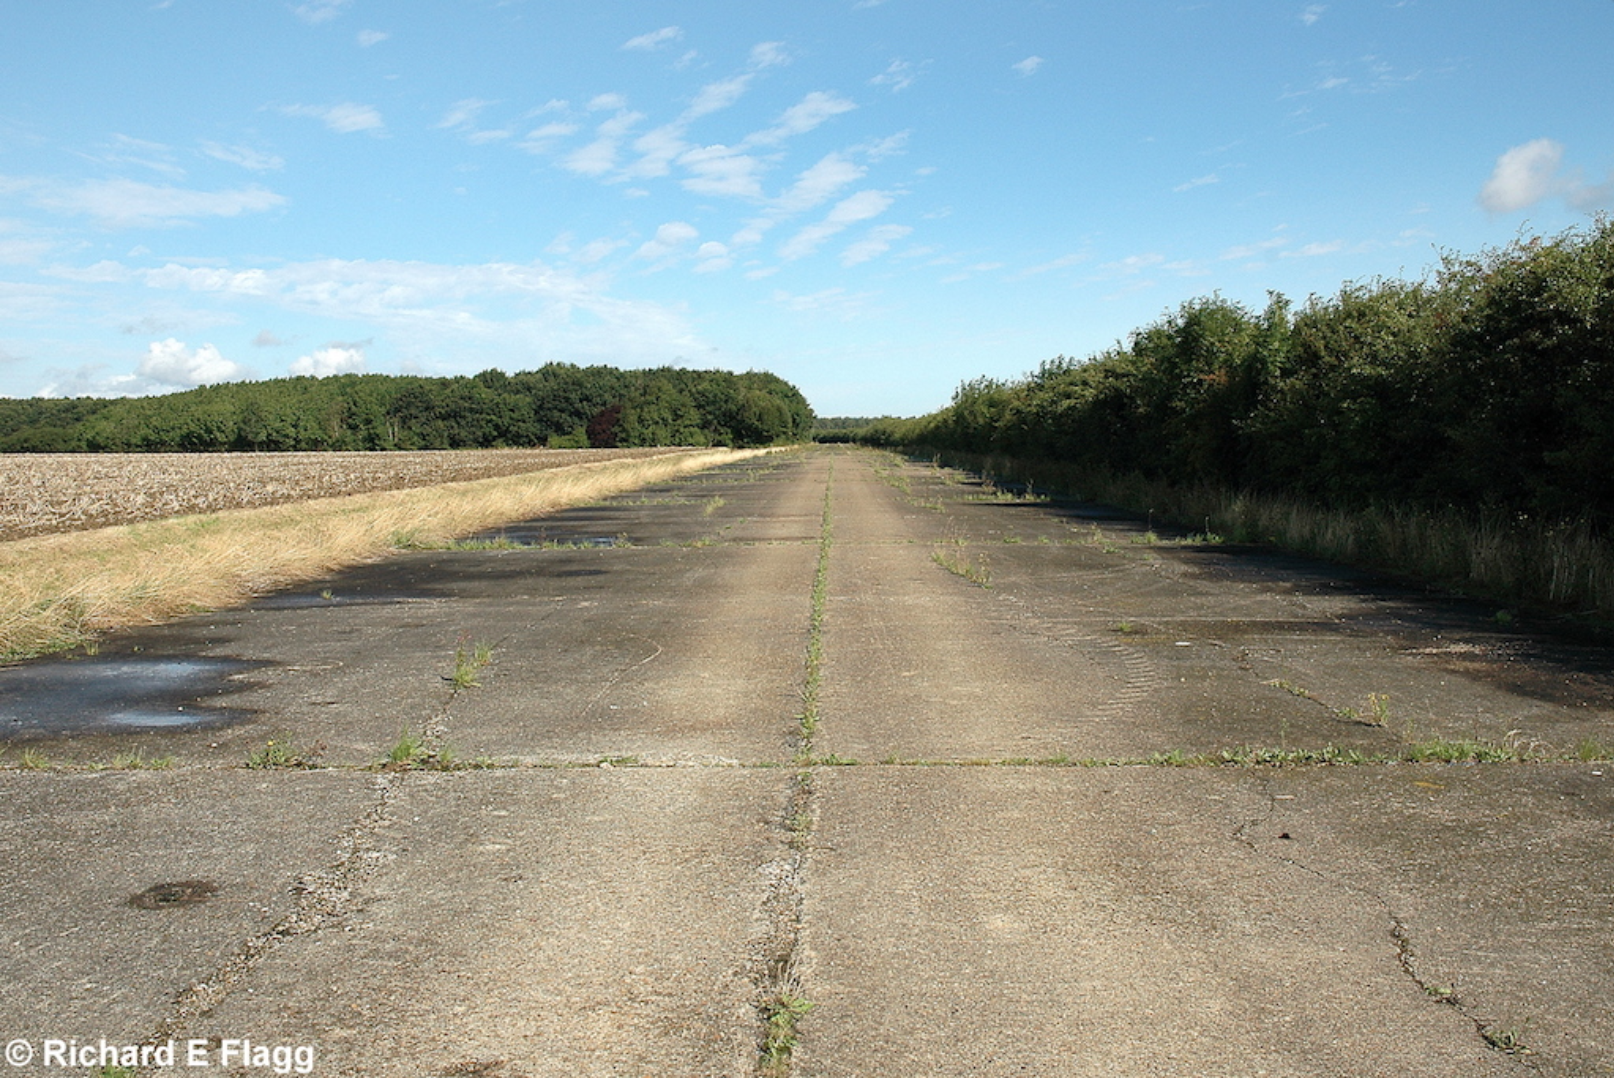 004Taxiway at the south of the airfield. Looking north away from the runway 05 threshold - 17 August 2008.png